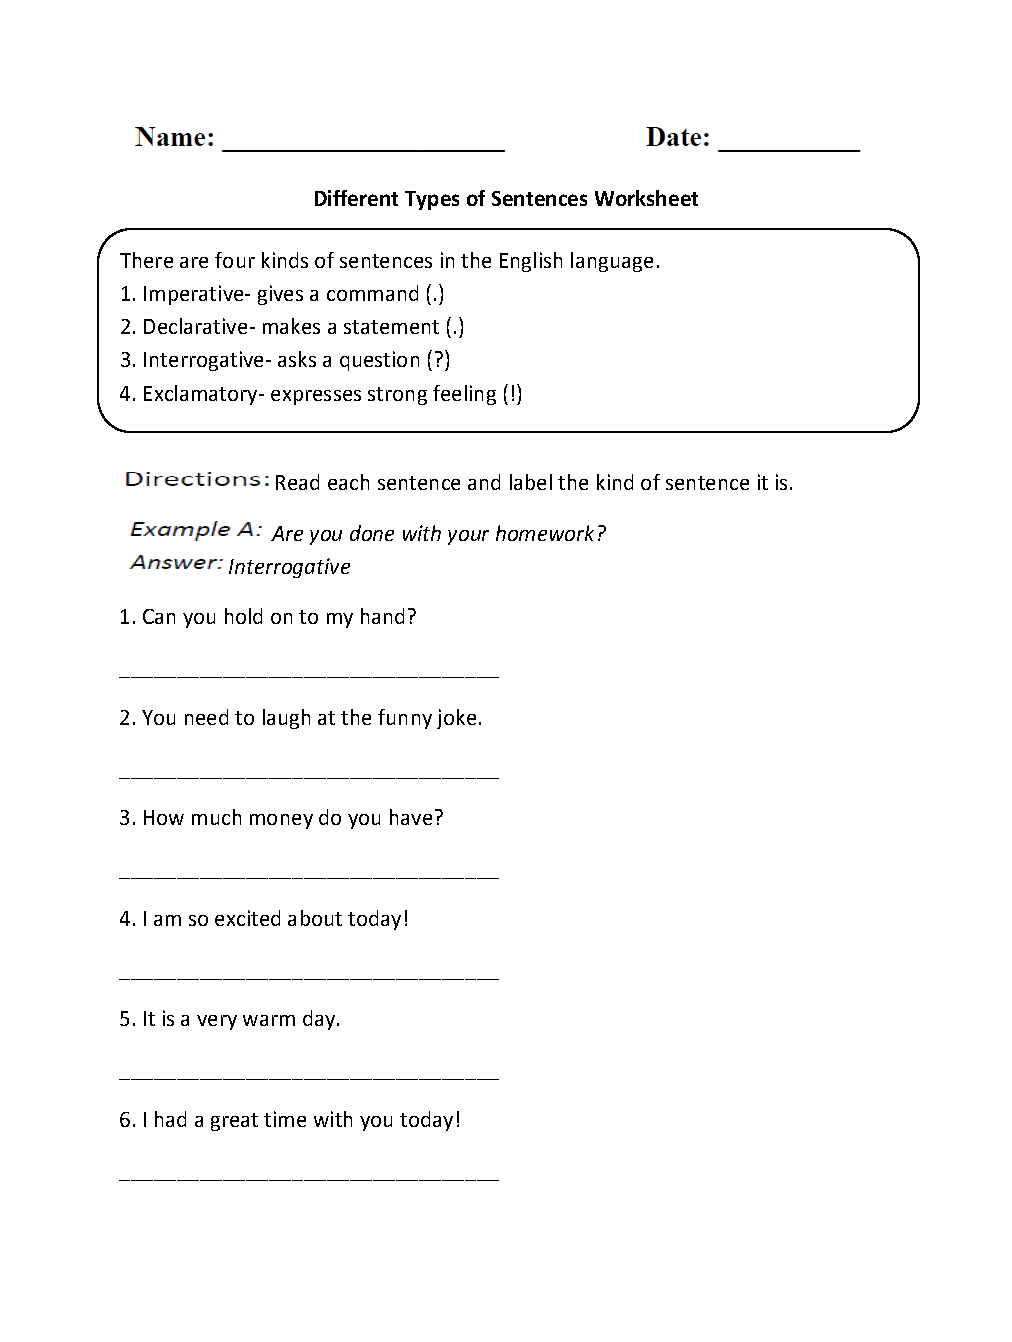 Worksheets Sentence Types Worksheets sentences worksheets types of different worksheet